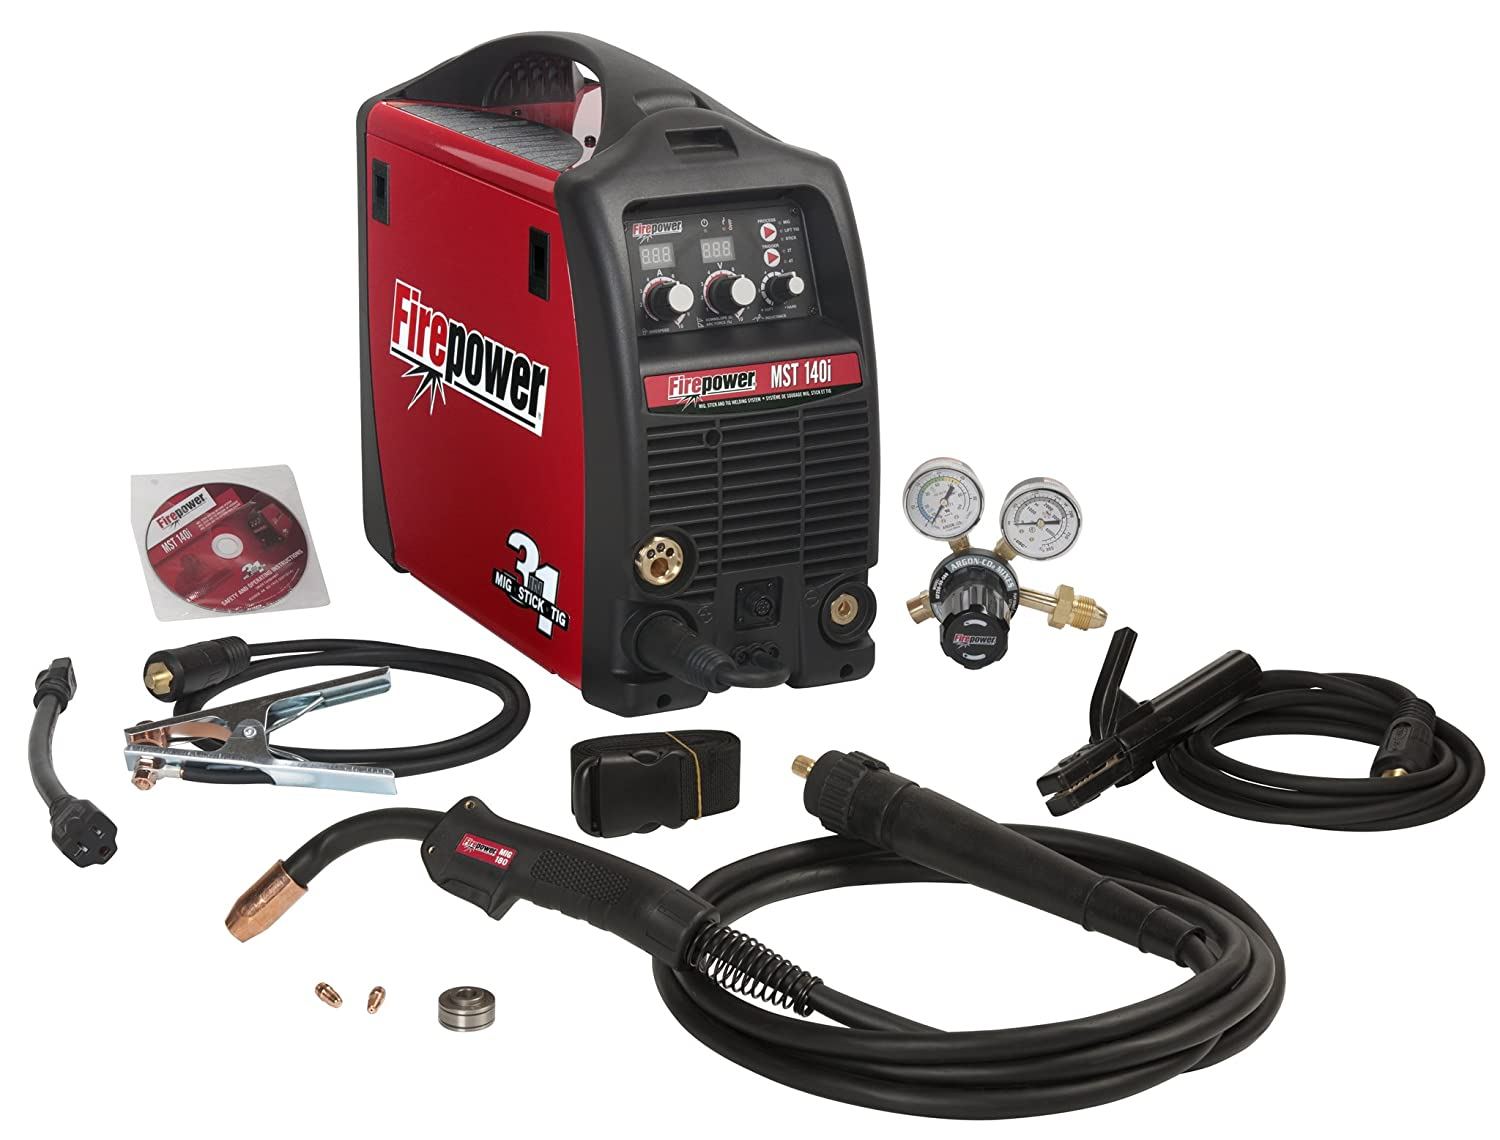 2. Firepower 1444-0870 MST 140i 3-in-1 Mig Stick and TIG Welding System